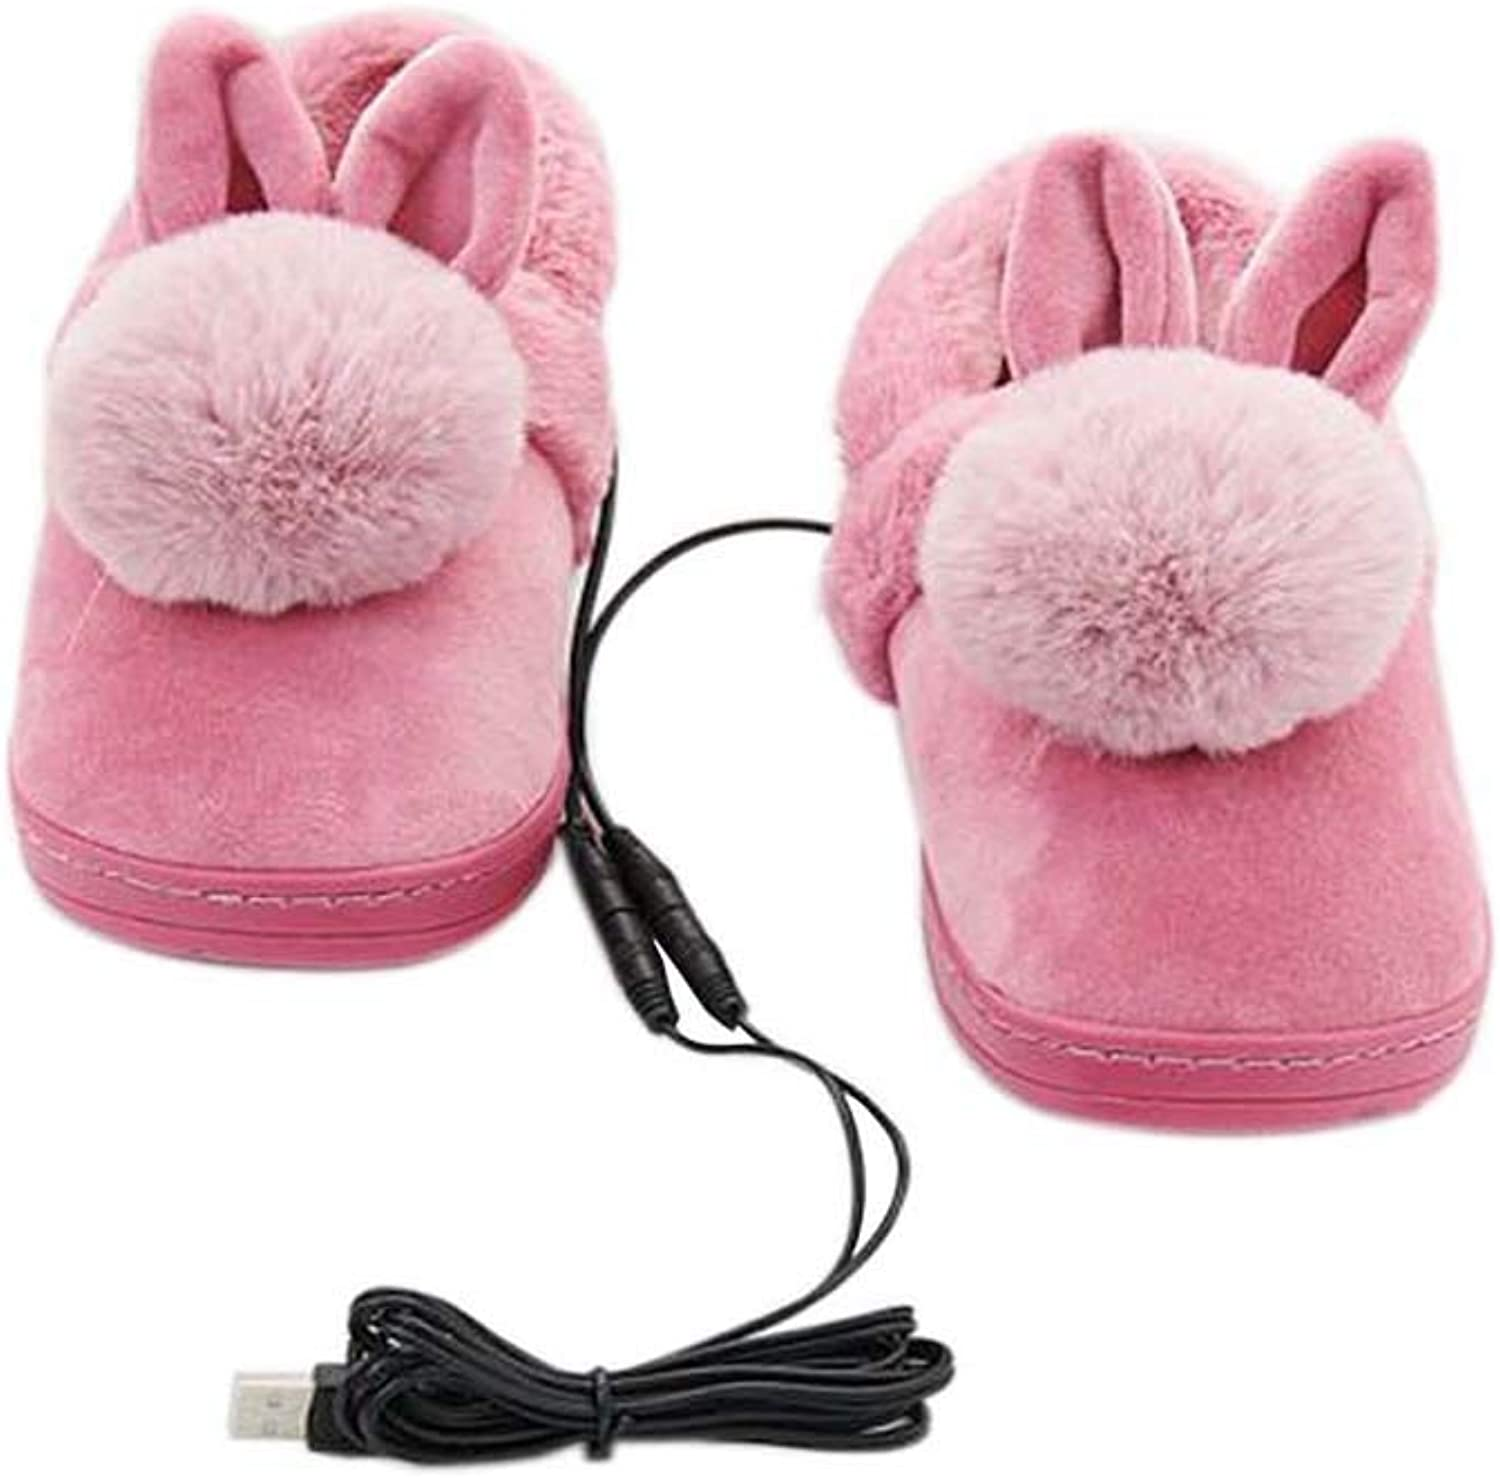 [pink red Rabbit] Heating shoes Warm USB Electric Heated Slipper USB Foot Warmer for Winter 24cm